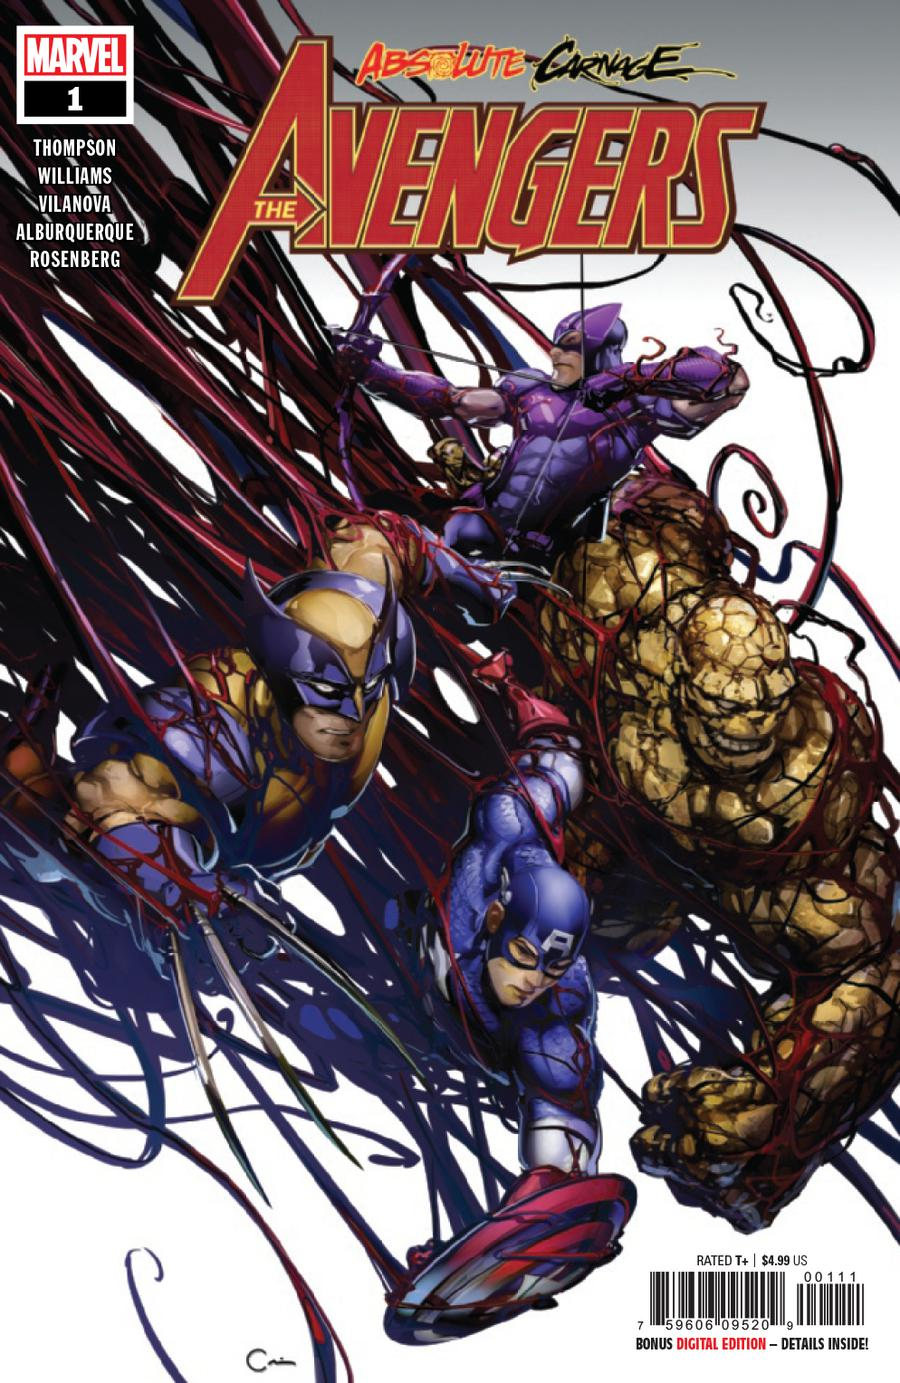 Absolute Carnage Avengers #1 Cover A Regular Clayton Crain Cover